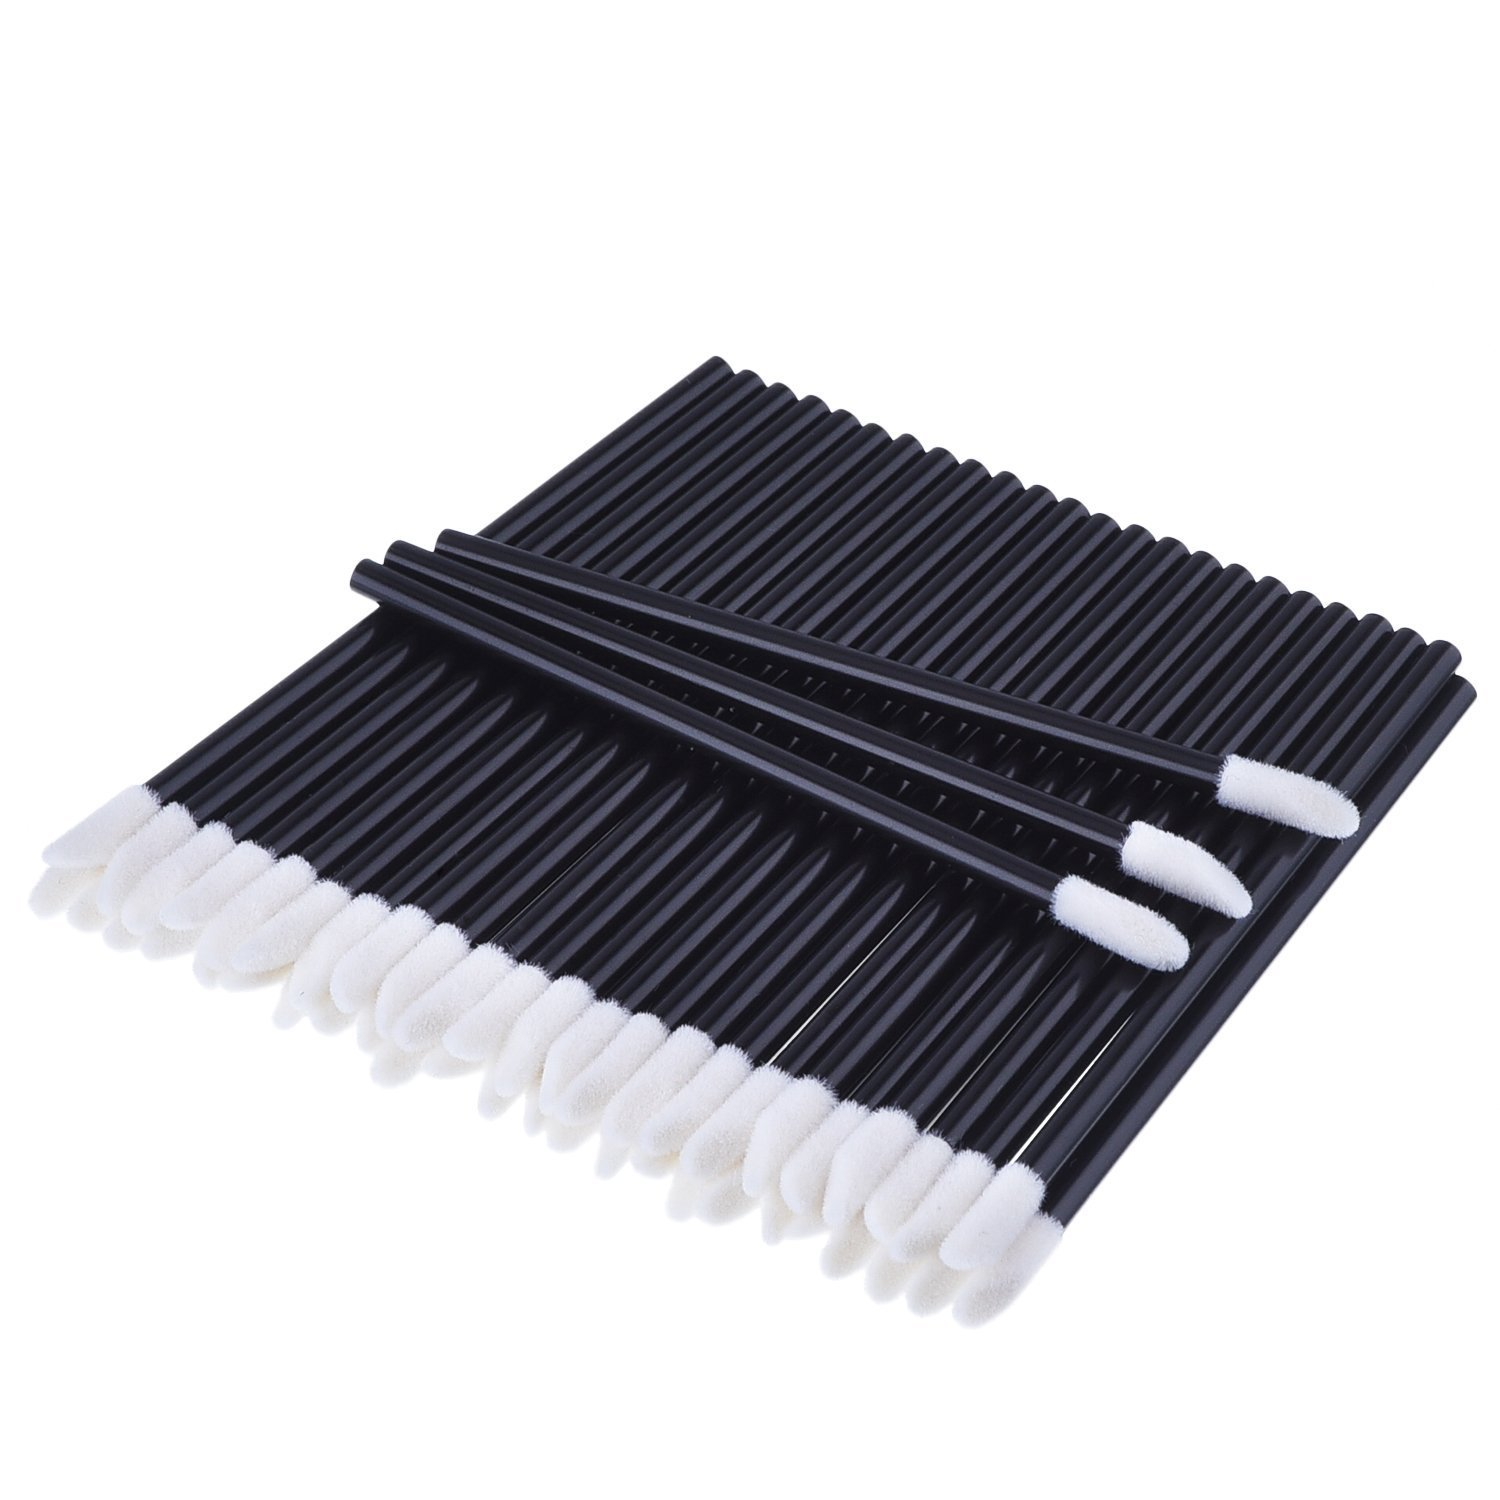 M-Aimee 300 Pack Disposable Lip Brushes Lipstick Gloss Wands Applicator Makeup Tool Kits, Black Lip-300-black